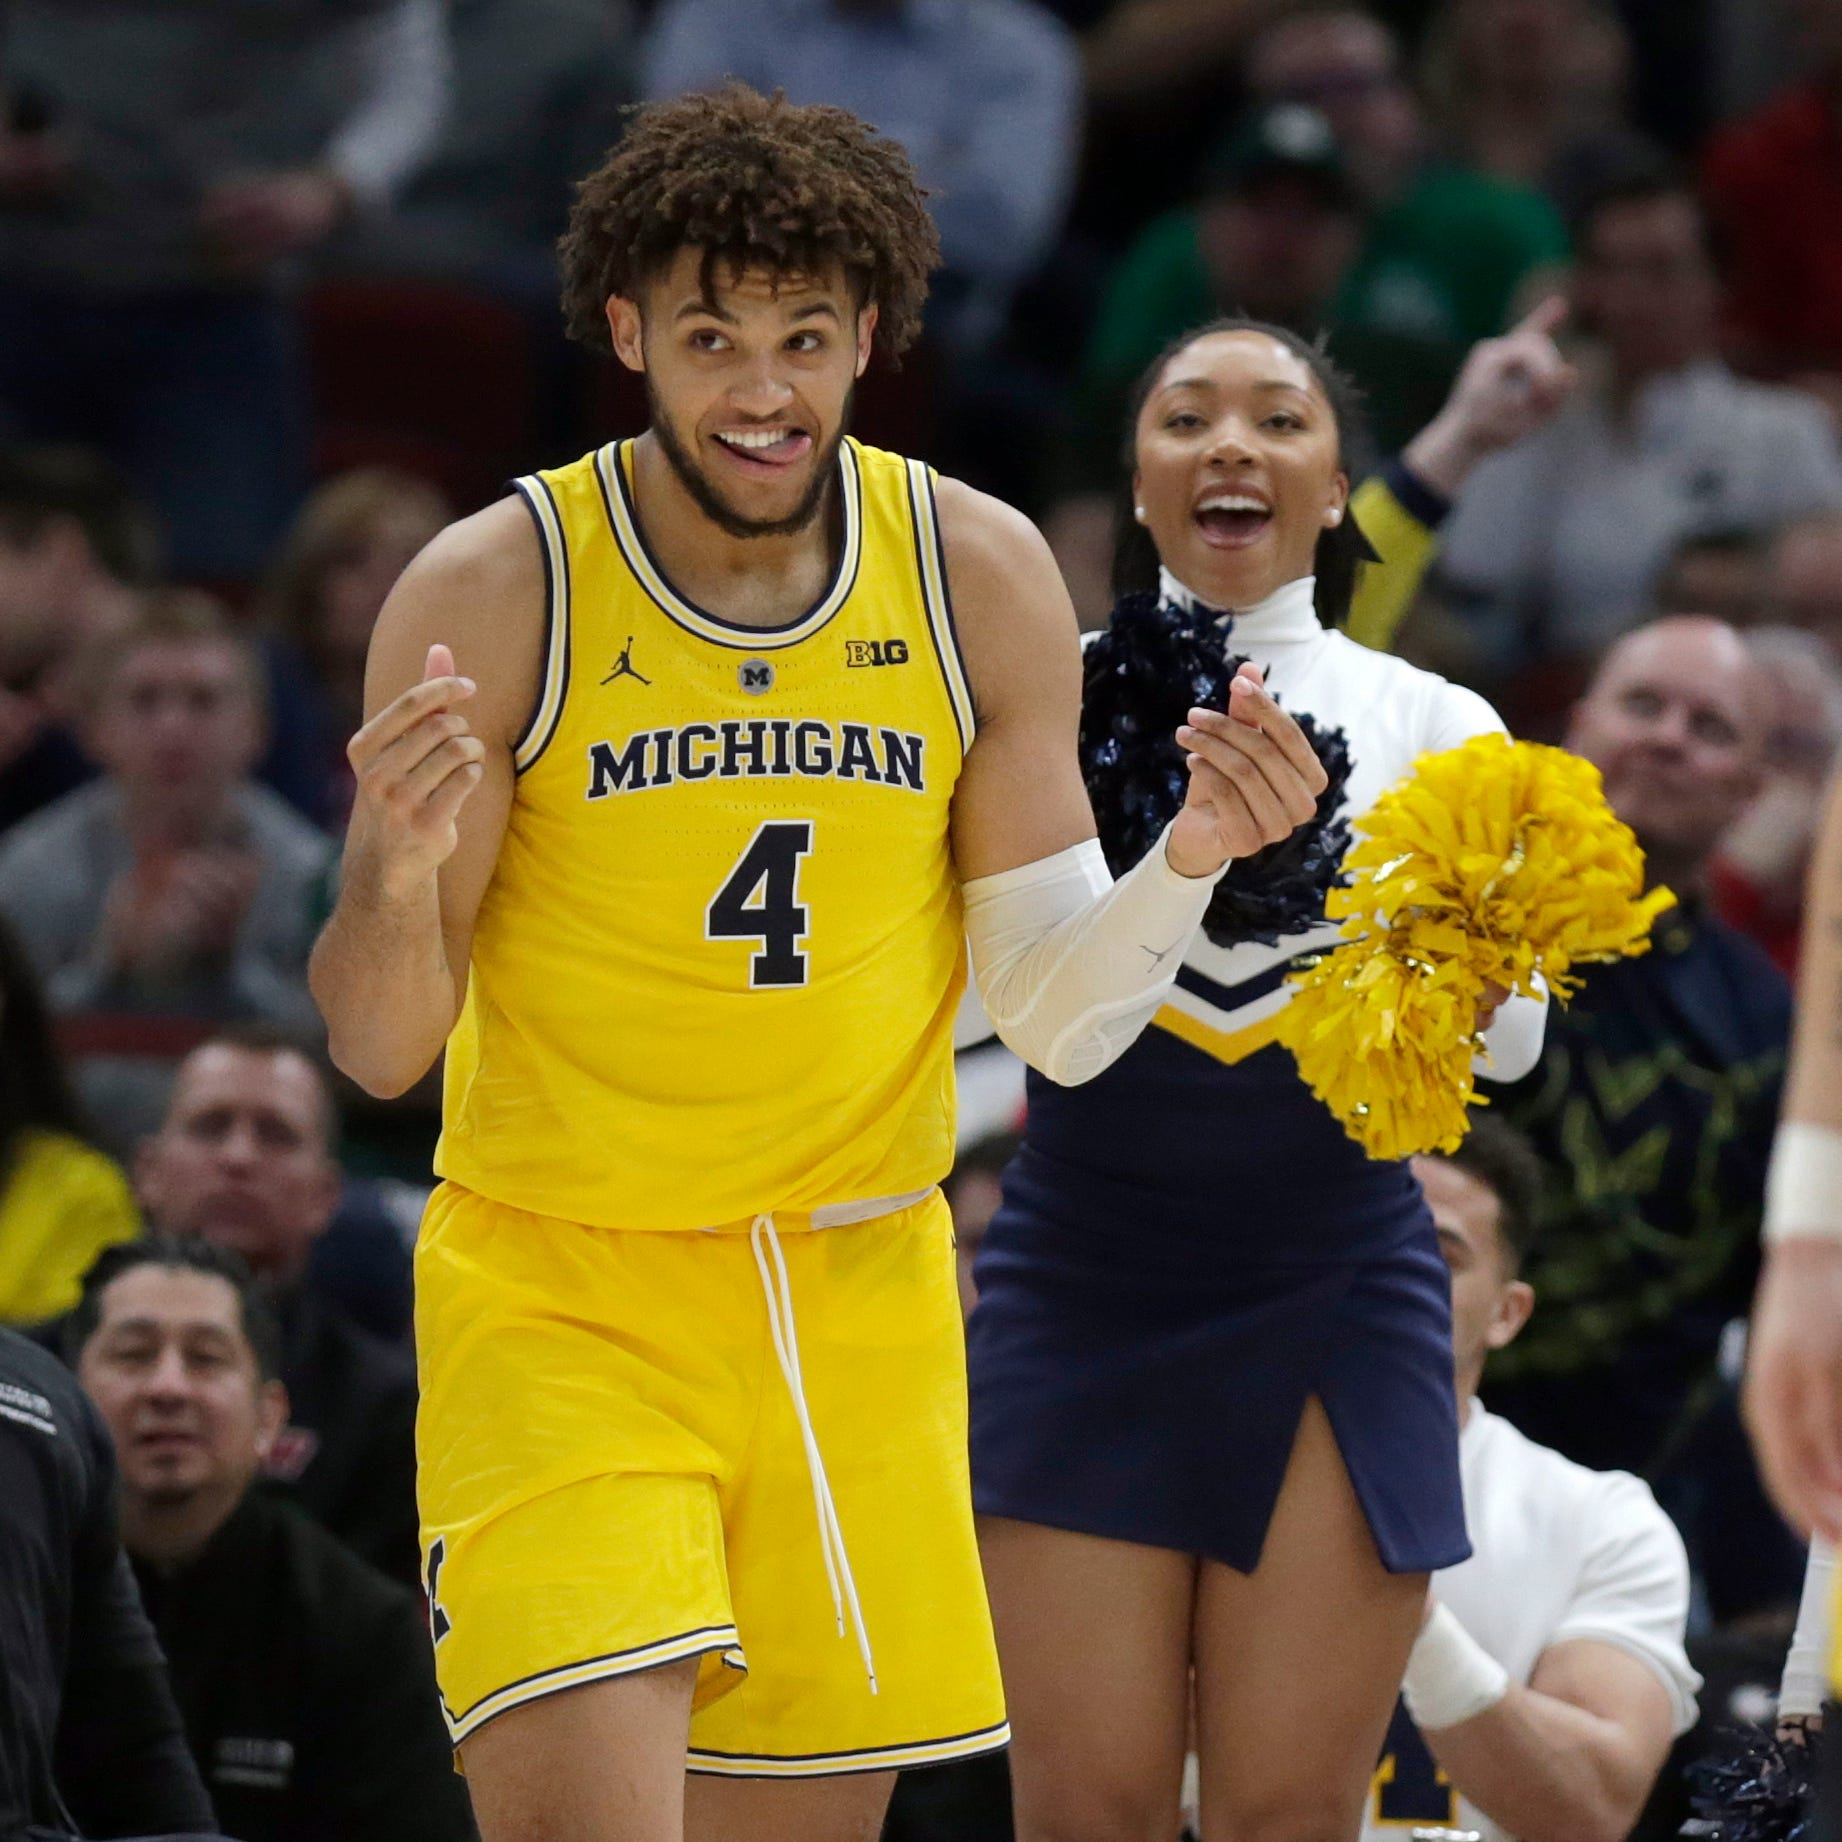 Michigan's Isaiah Livers reveals Midas touch in 21-point performance